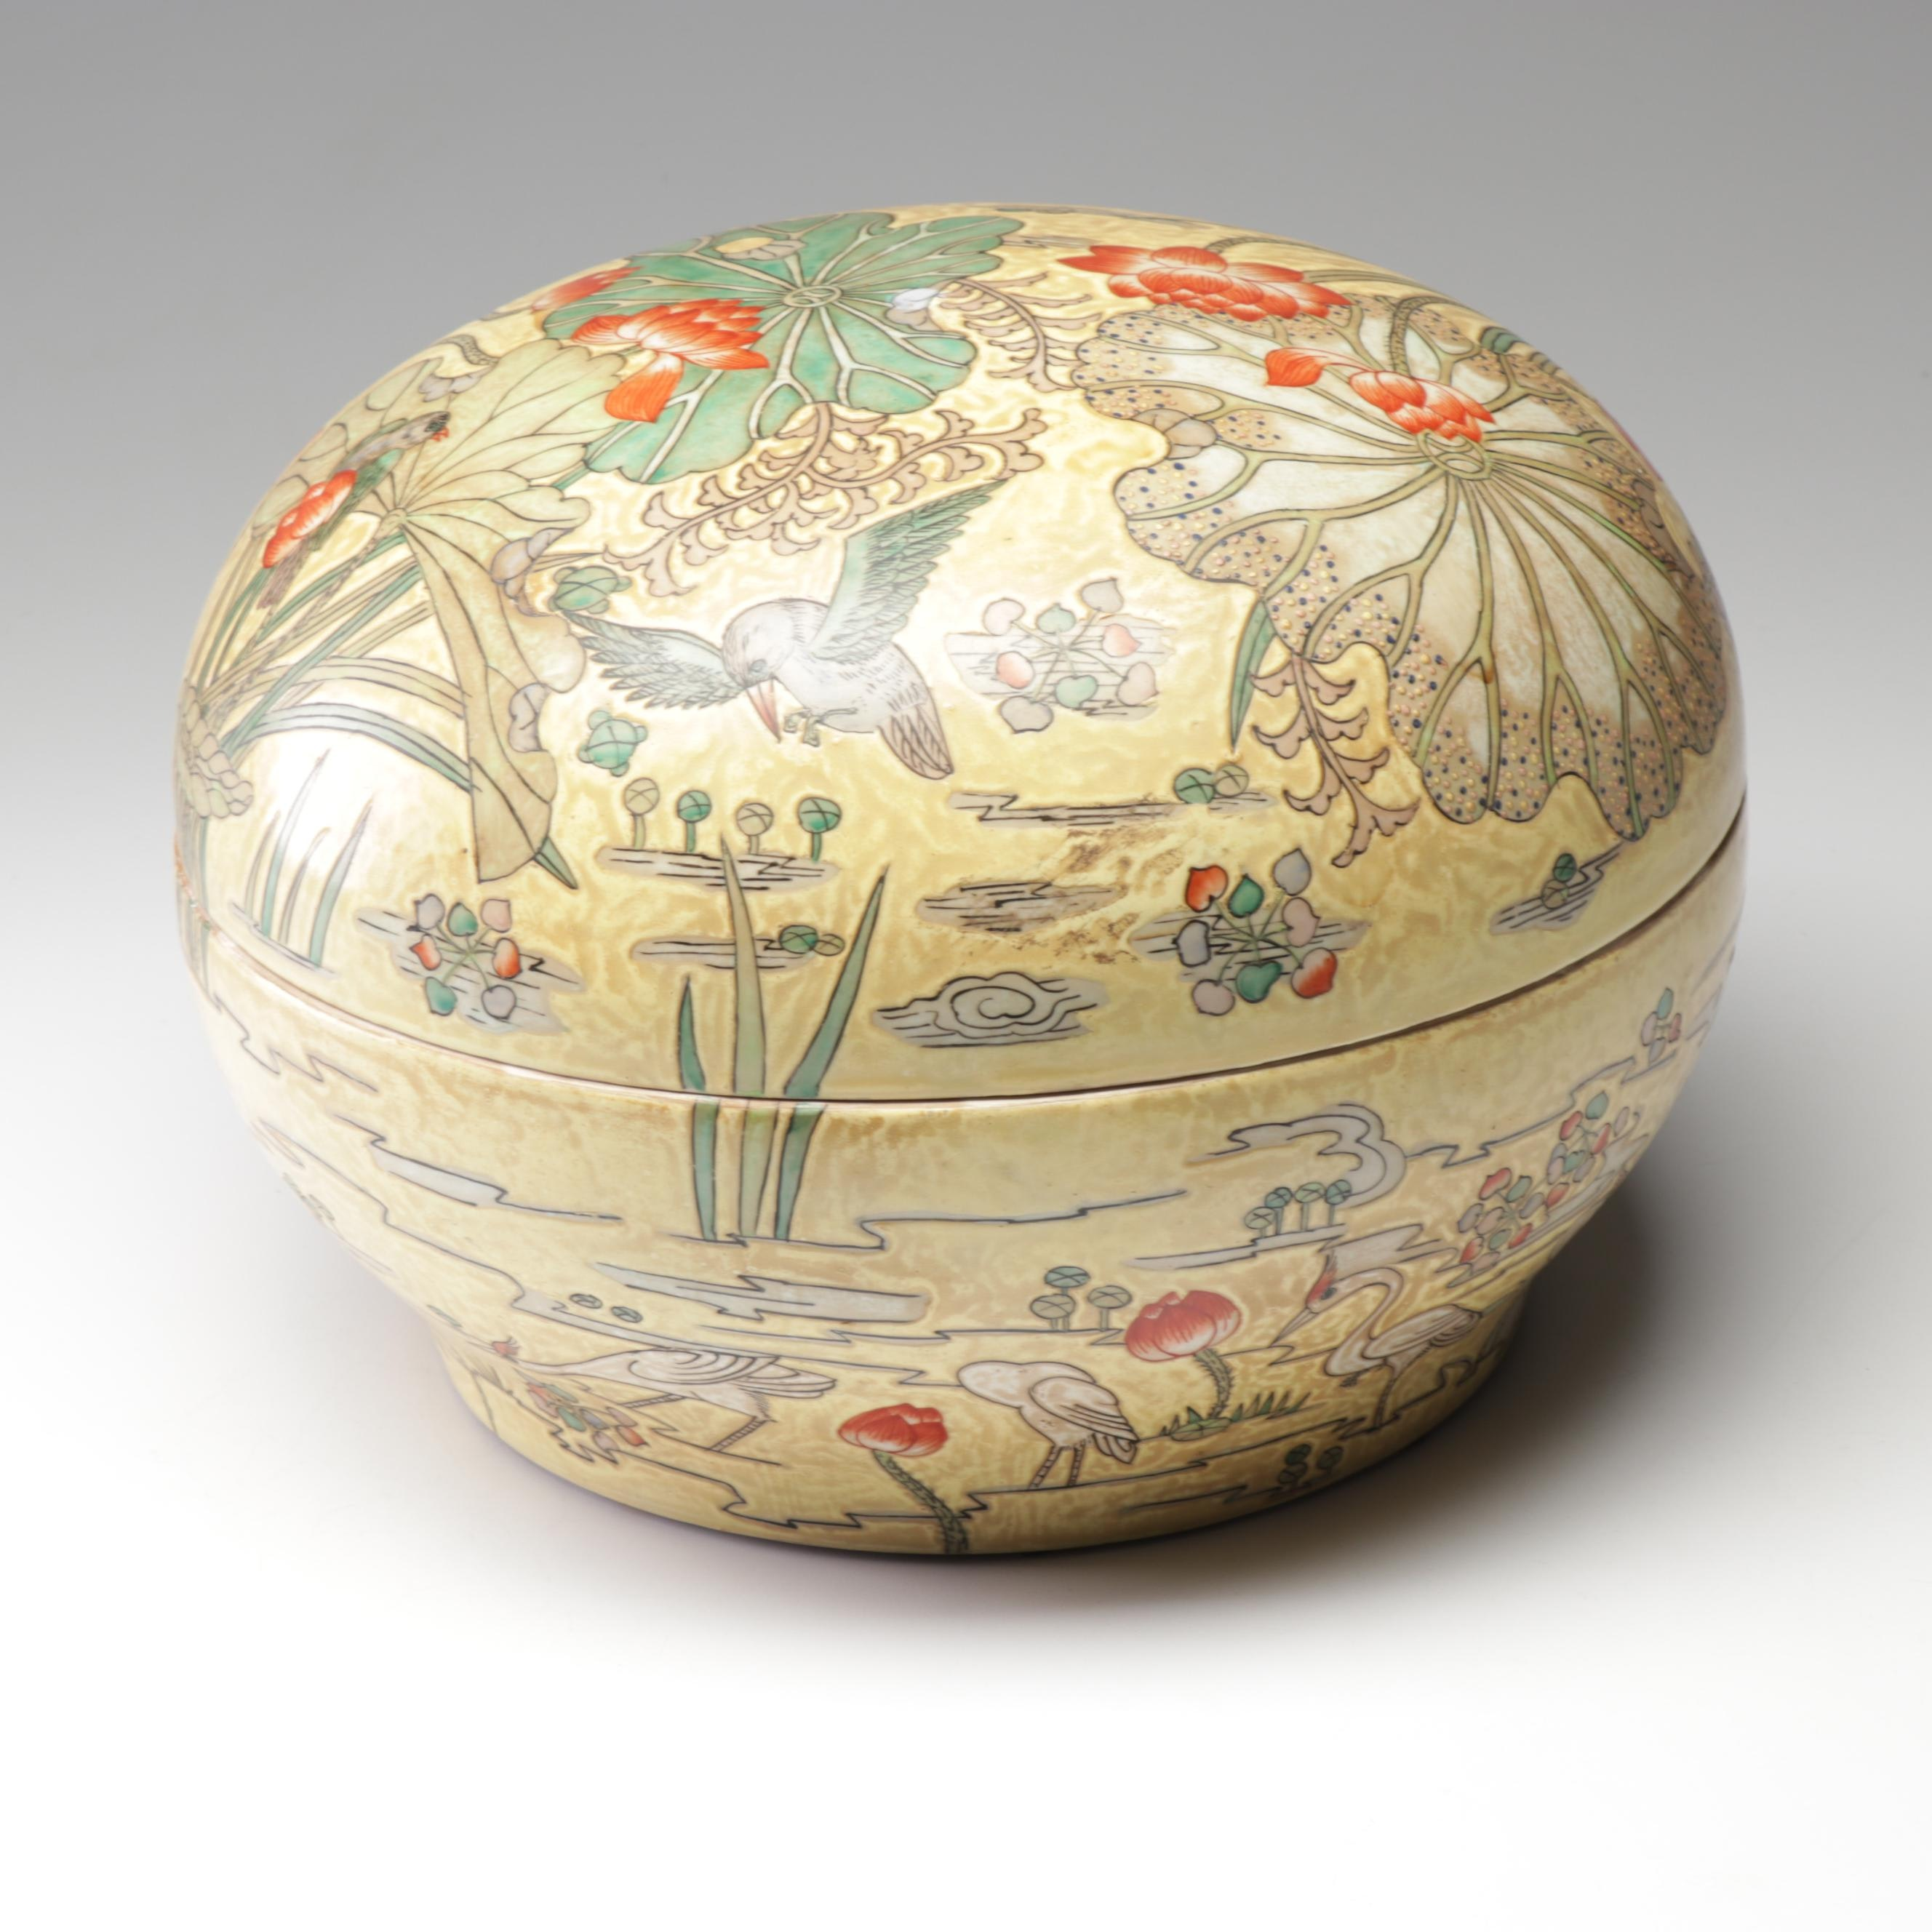 Maitland-Smith Hand-Painted Porcelain Chinoiserie Style Lidded Vessel